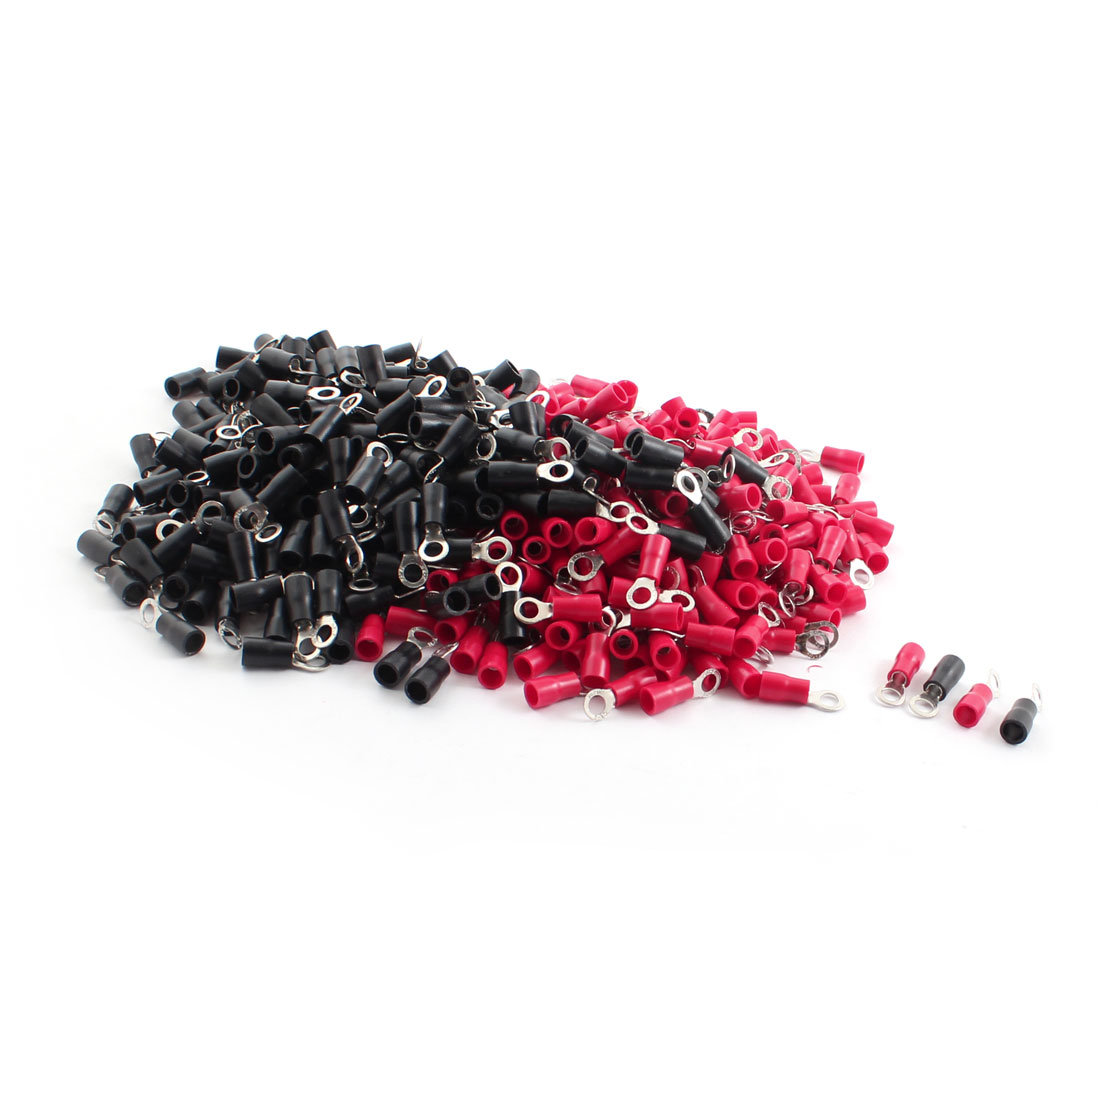 600Pcs 4.3mm Hole Insulated Ring Crimp Terminal Connectors for AWG 16-14 Wire